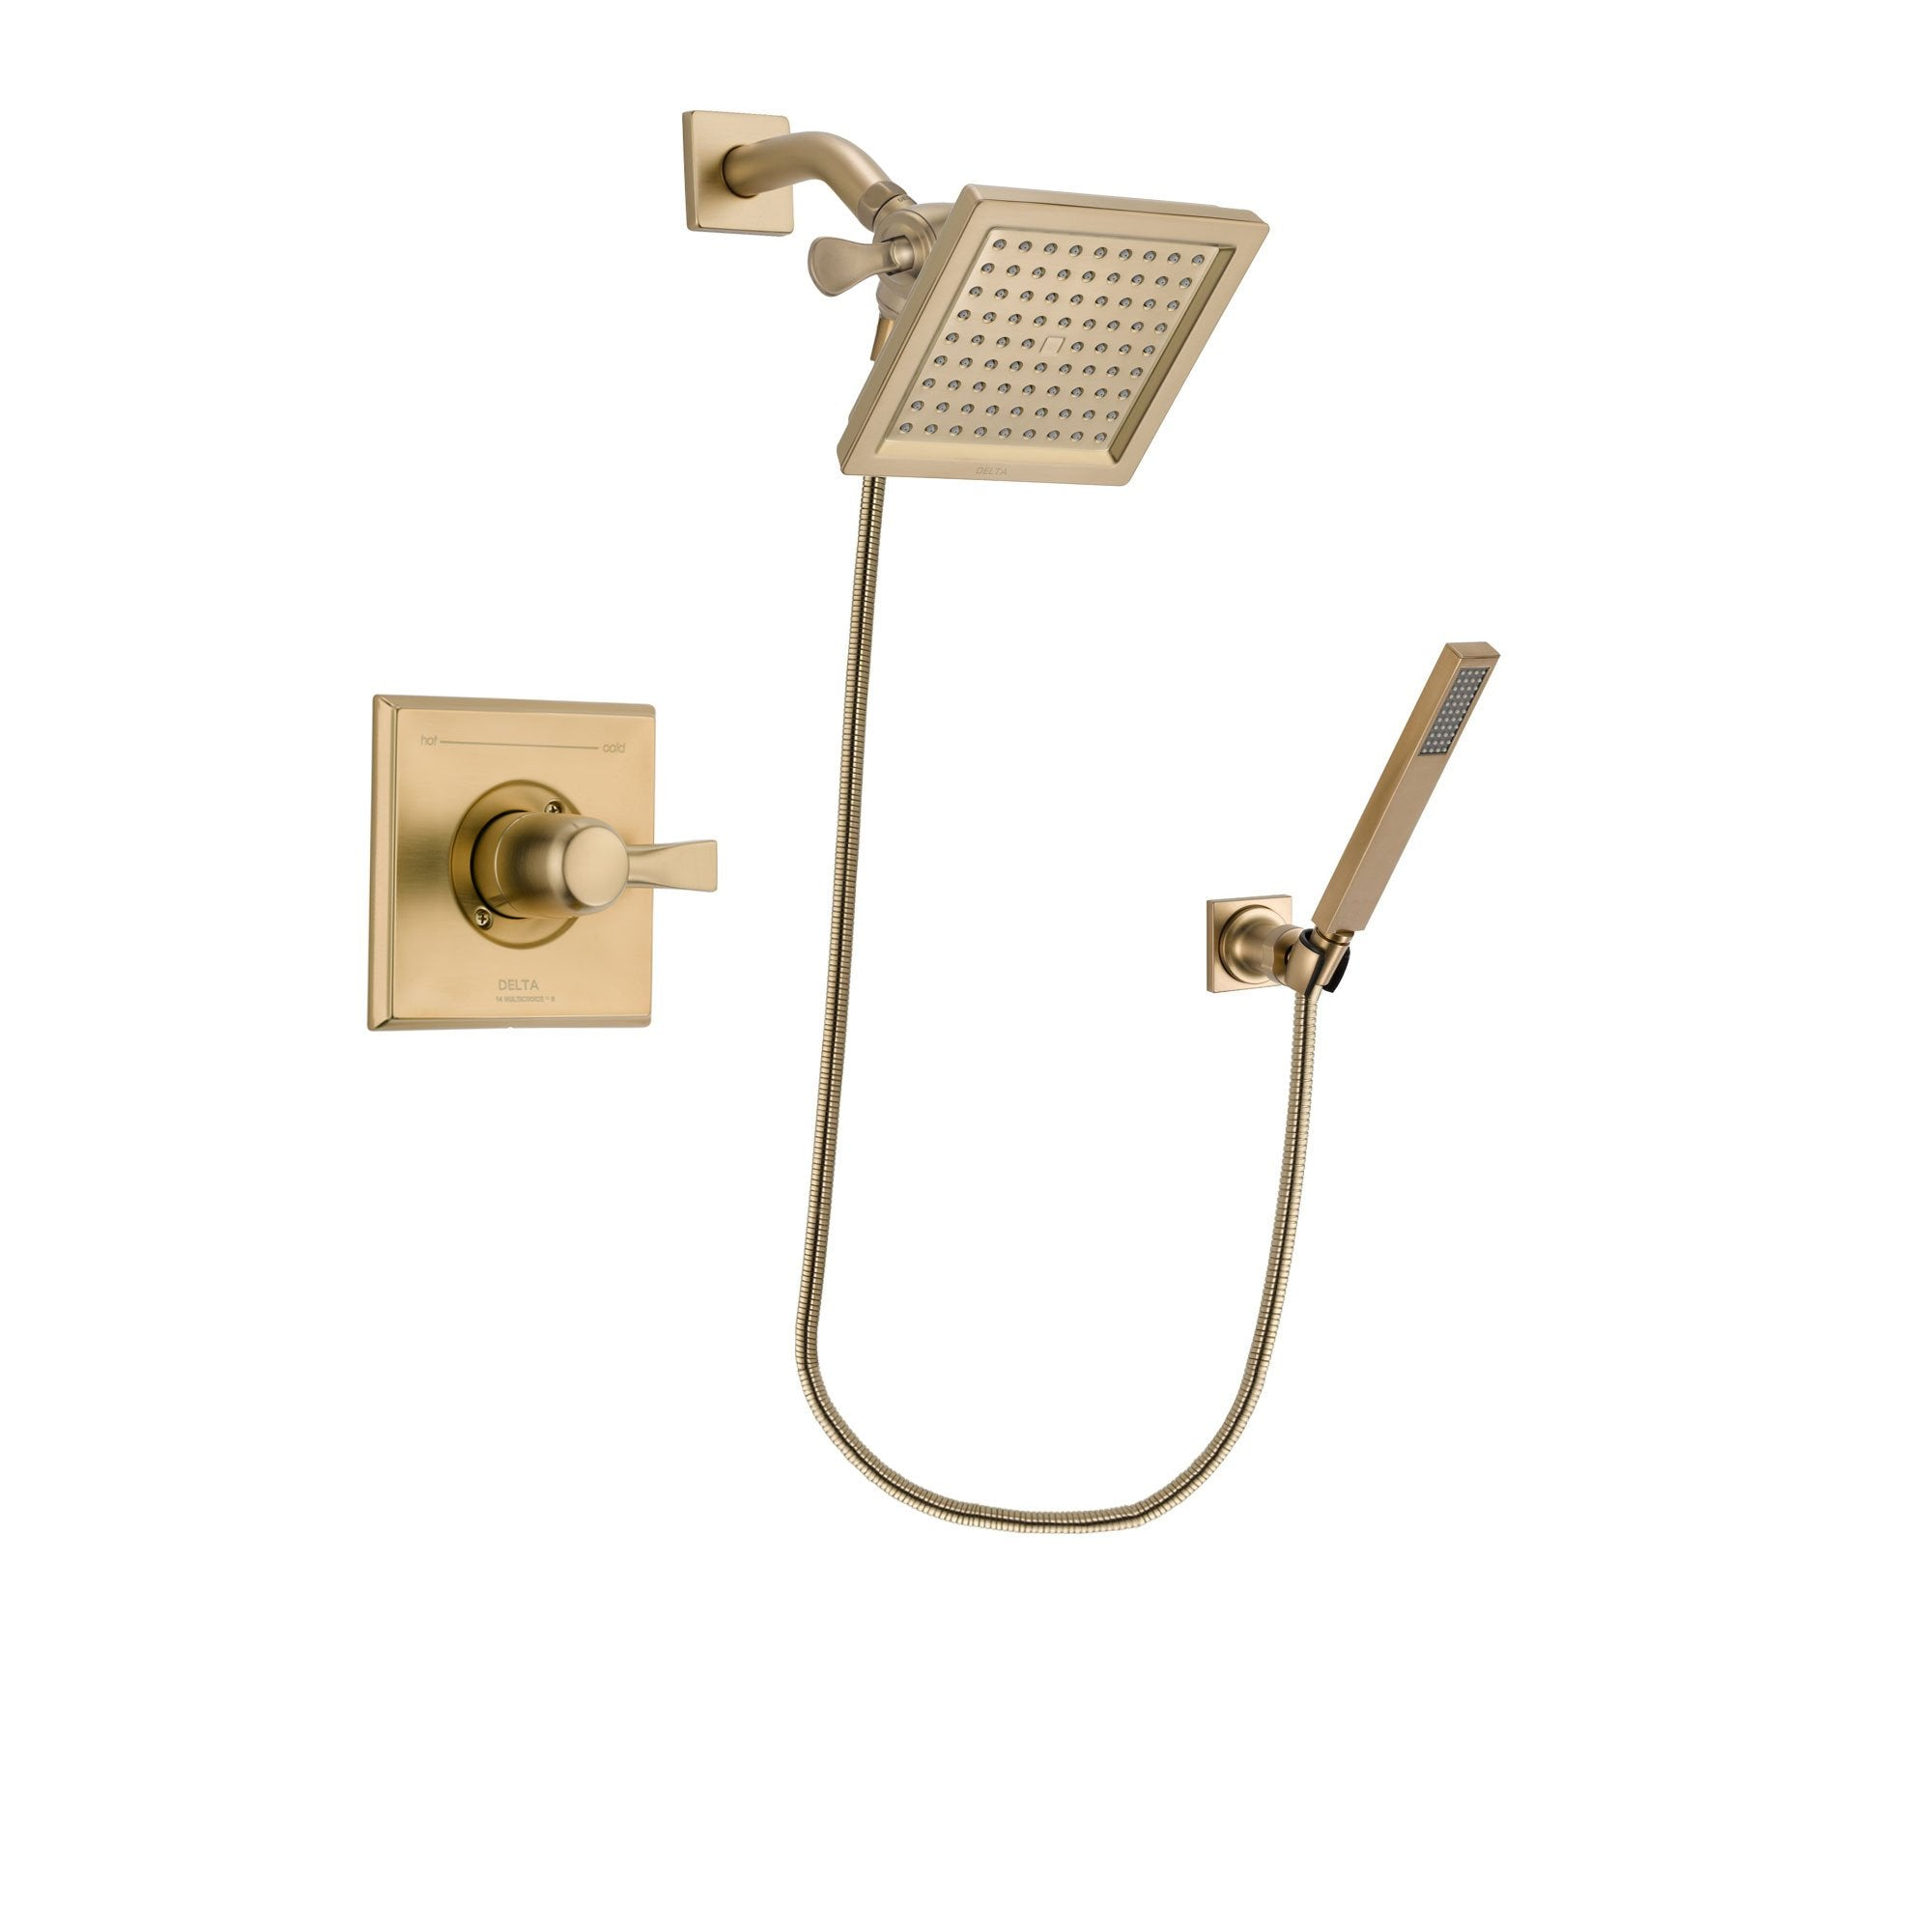 Delta Dryden Champagne Bronze Shower Faucet System with Hand Shower DSP3890V